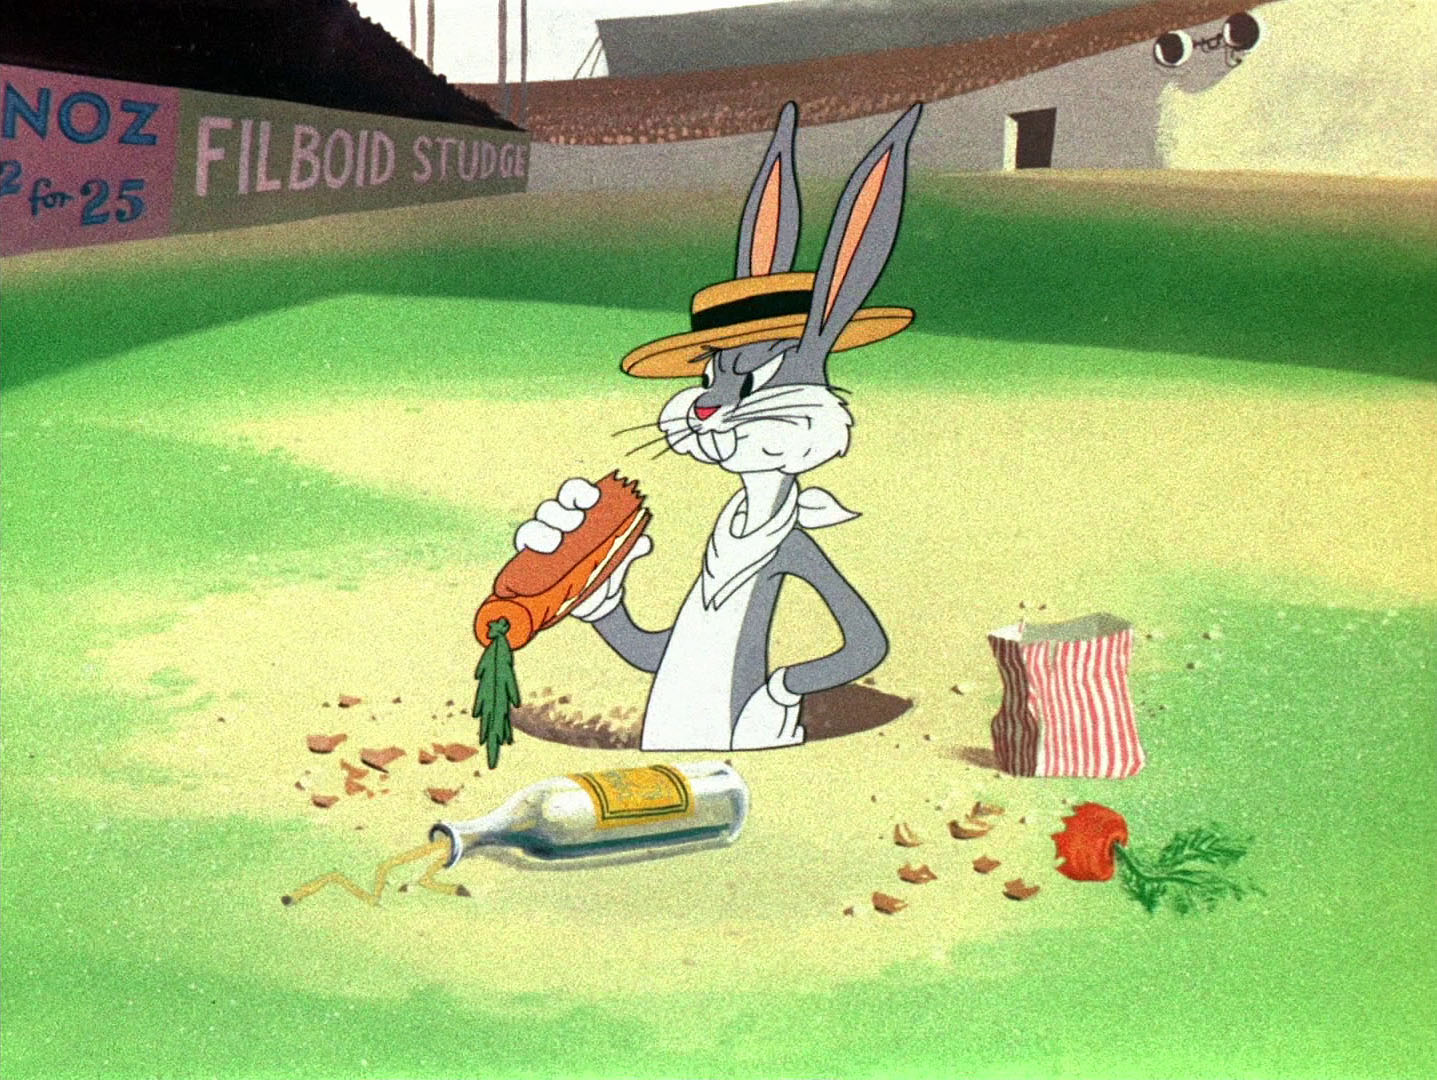 Check it out! Bugs Bunny baseball art by S. Preston is the perfect MLB decor